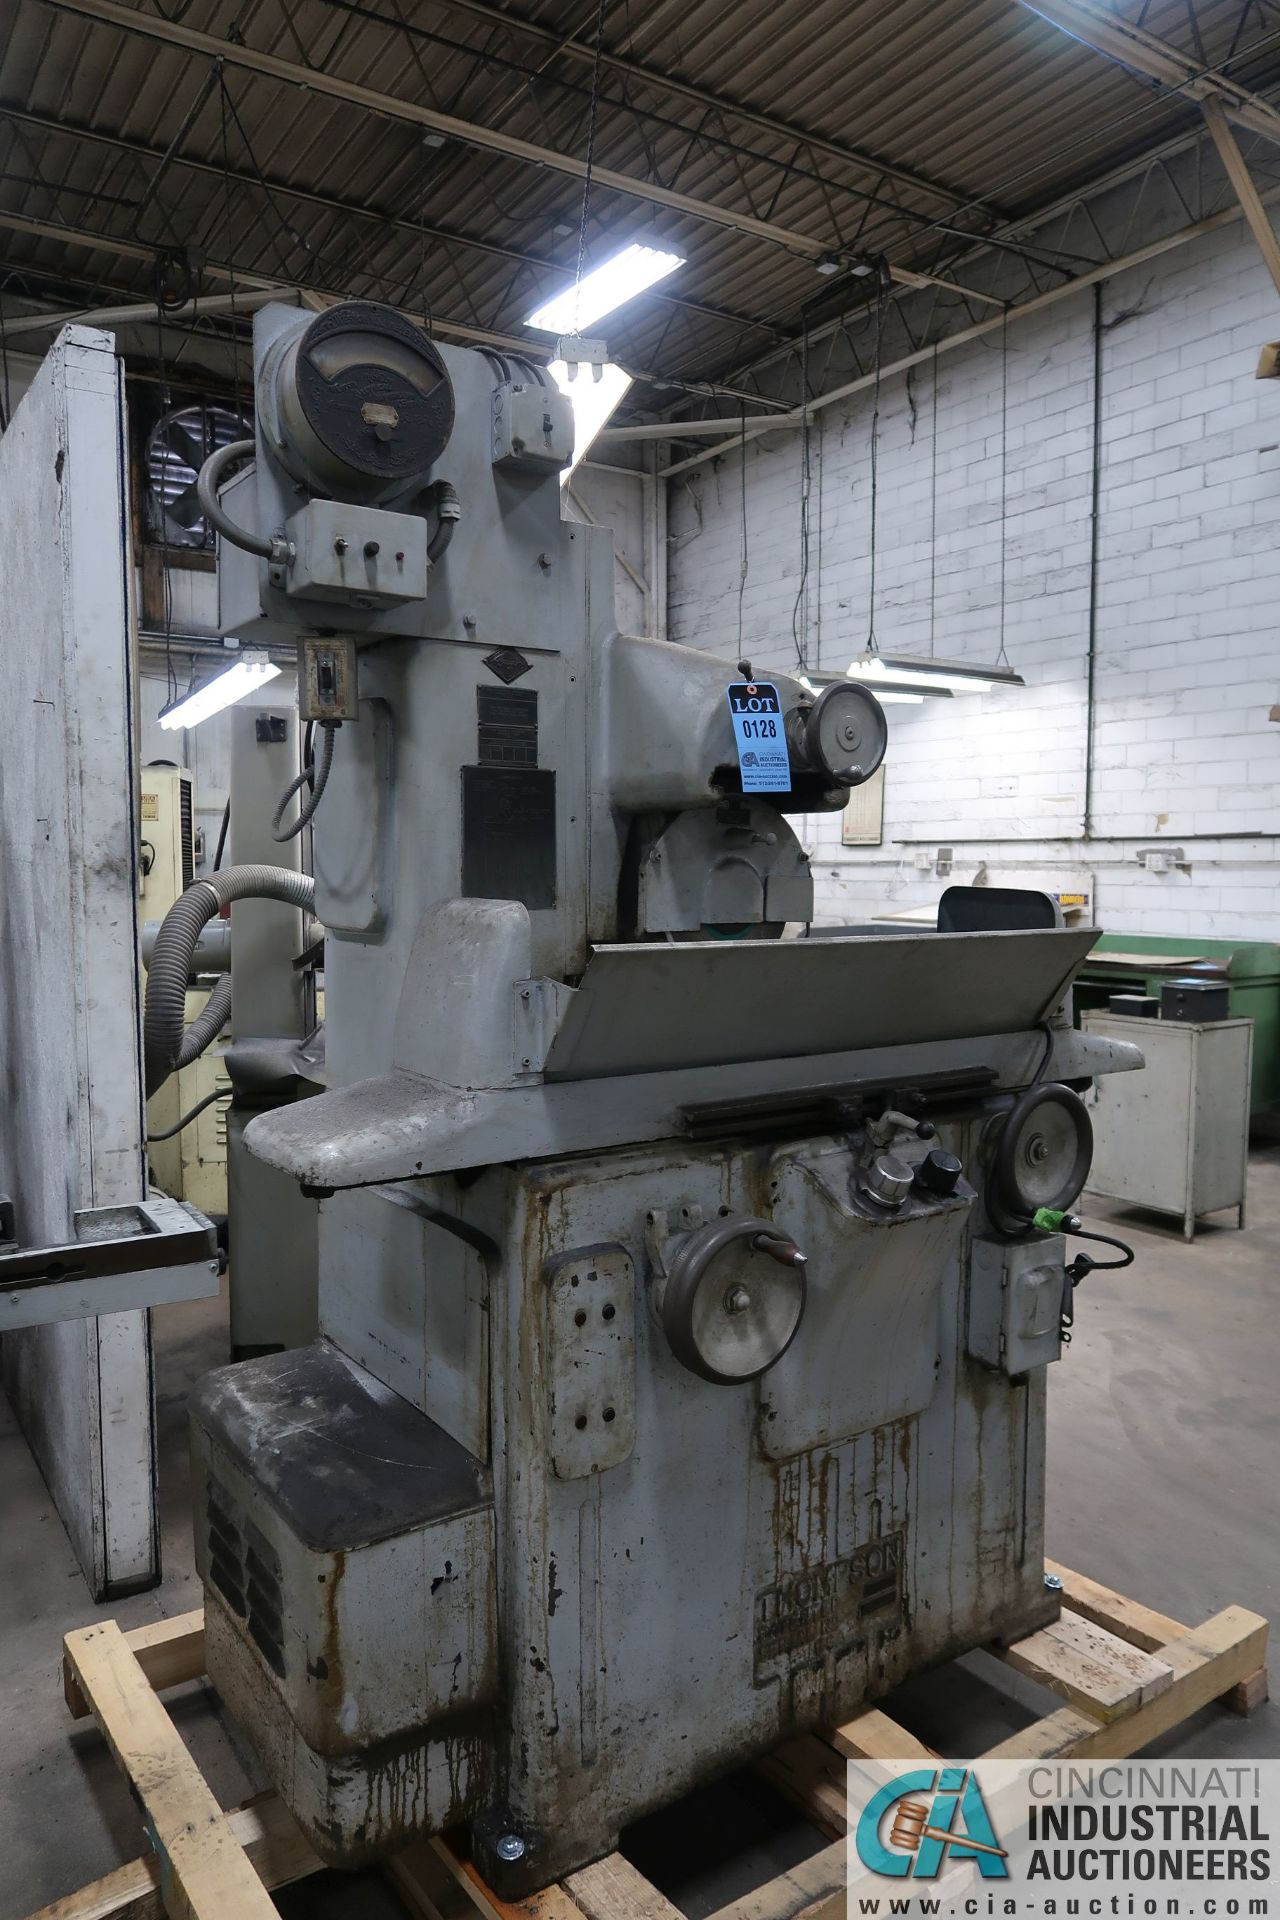 """6"""" X 18"""" THOMPSON HAND FEED SURFACE GRINDER; S/N F46258, 220 VOLTS, 3-PHASE, 1-1/2 HP MOTOR - Image 2 of 10"""